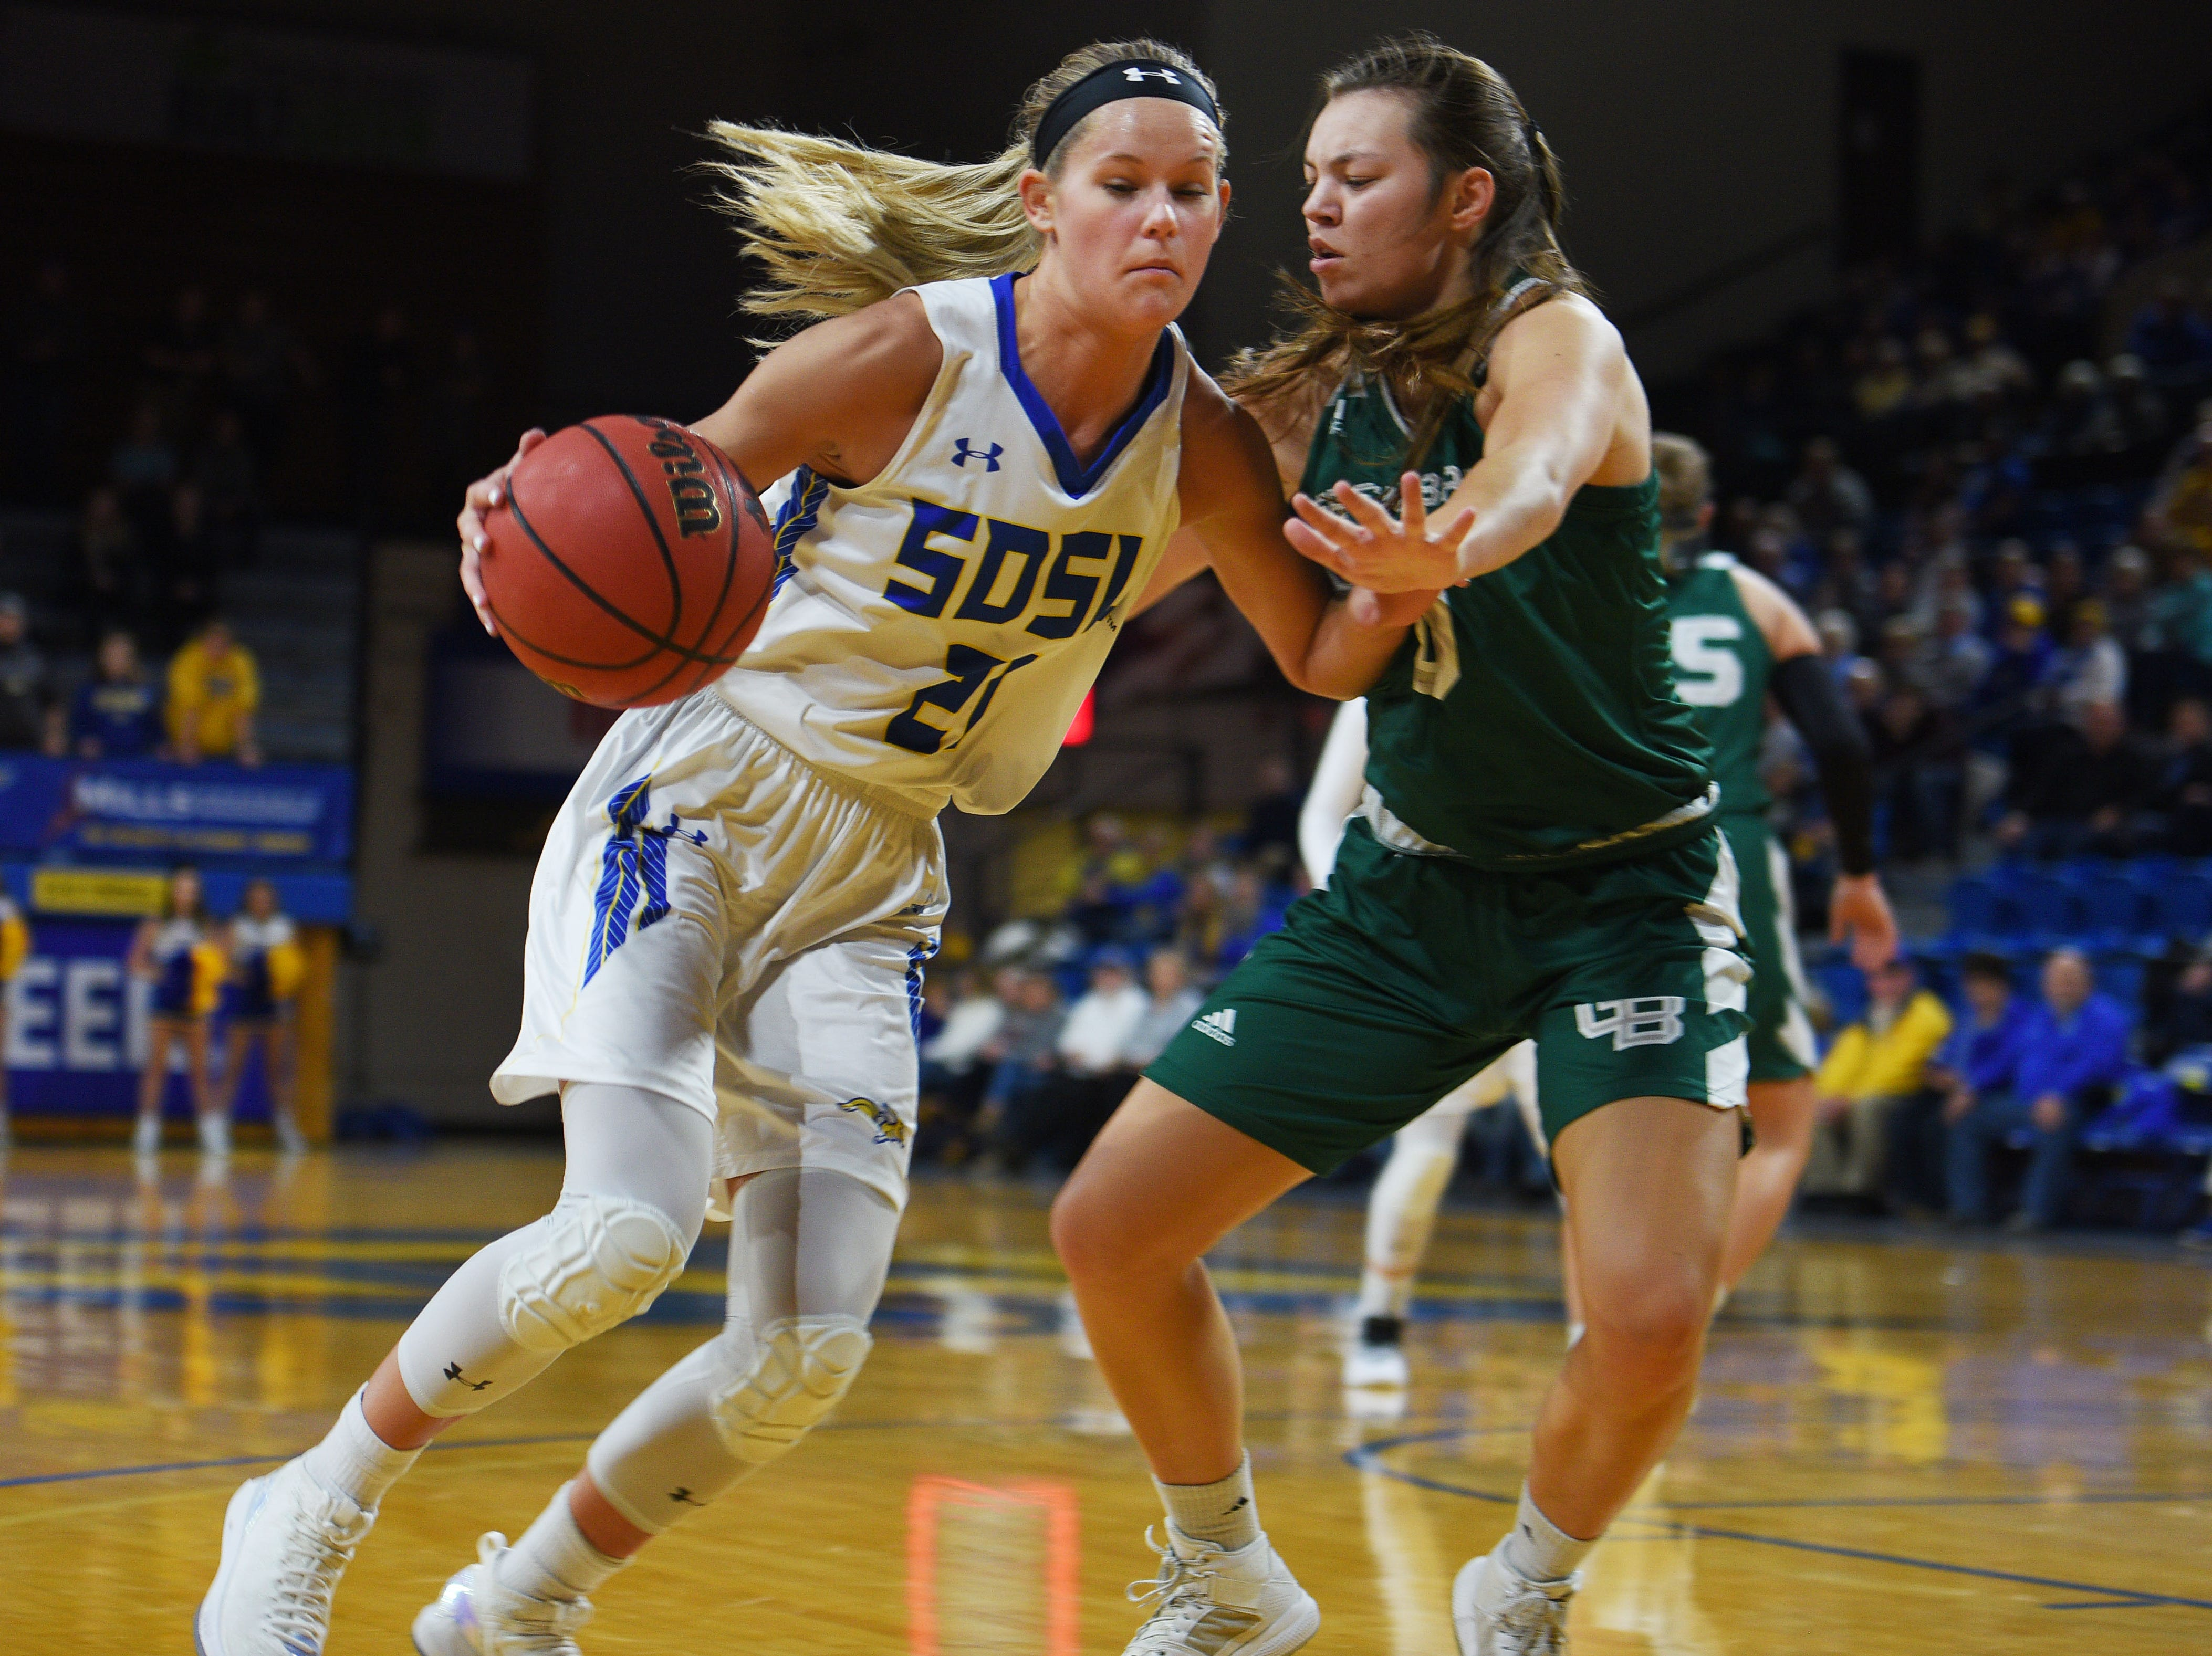 SDSU's Tylee Irwin goes against Green Bay's HaileyOskey during the game Thursday, Nov. 29, at Frost Arena in Brookings.